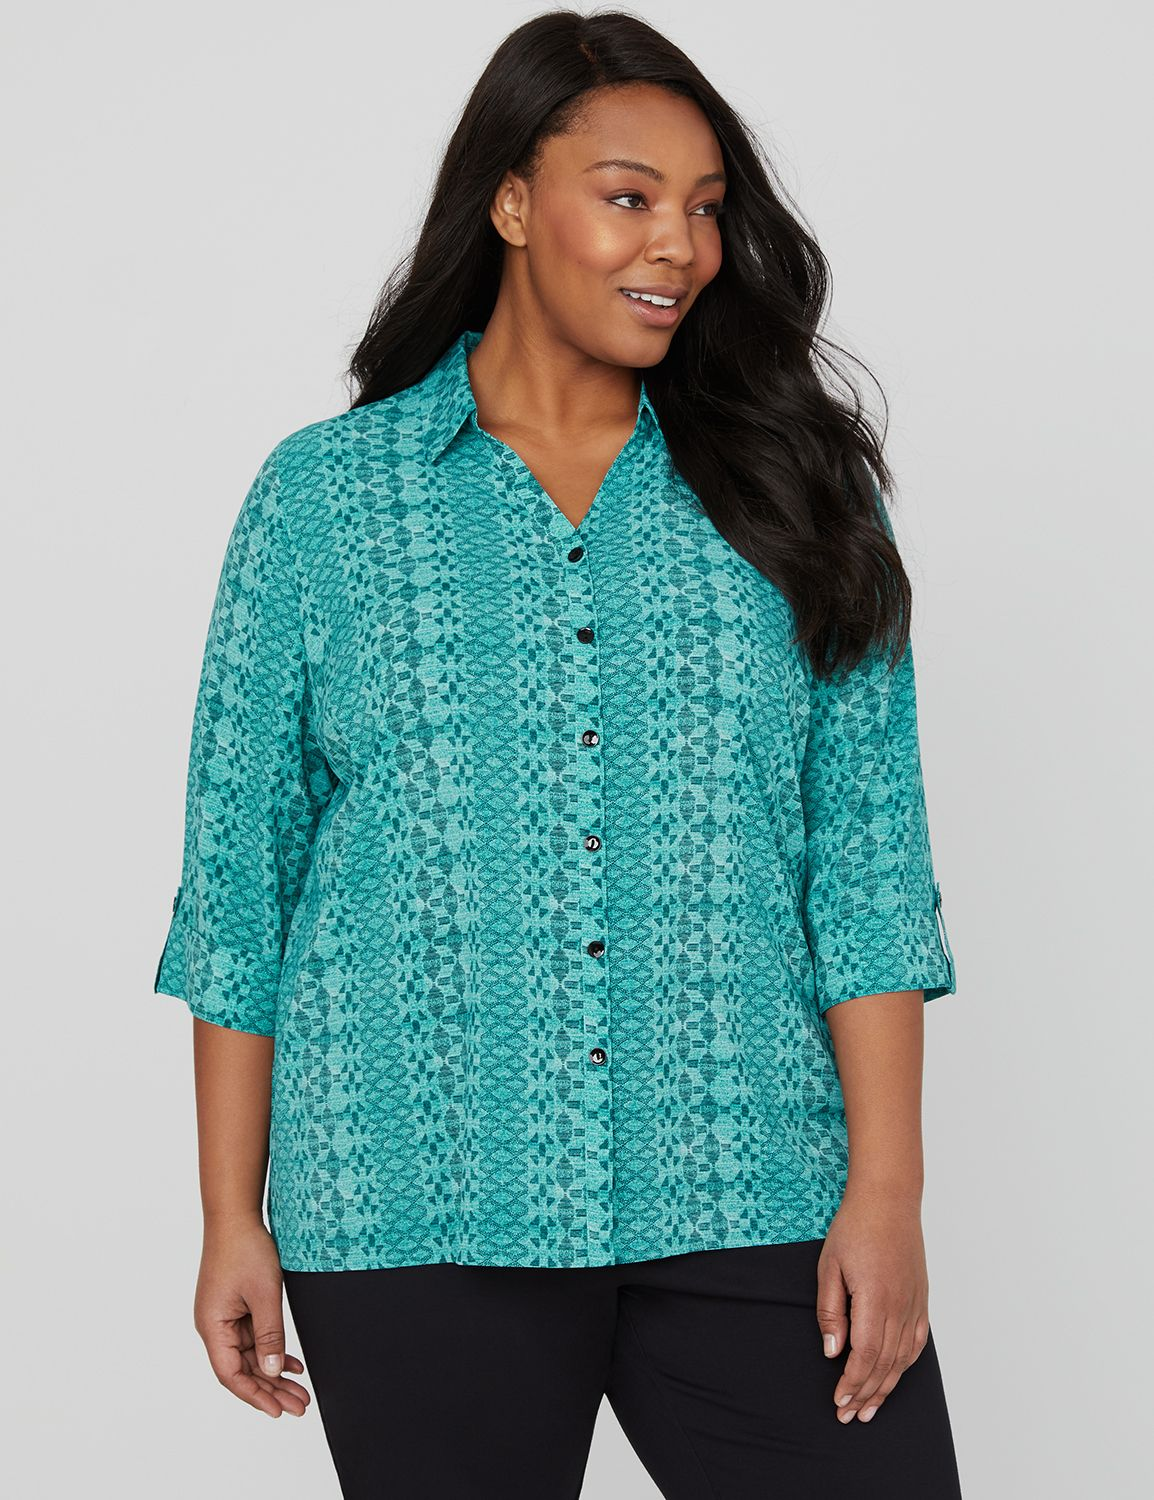 Maldives Buttonfront Shirt 3/4 Slv Collared CDC Blouse MP-300104915